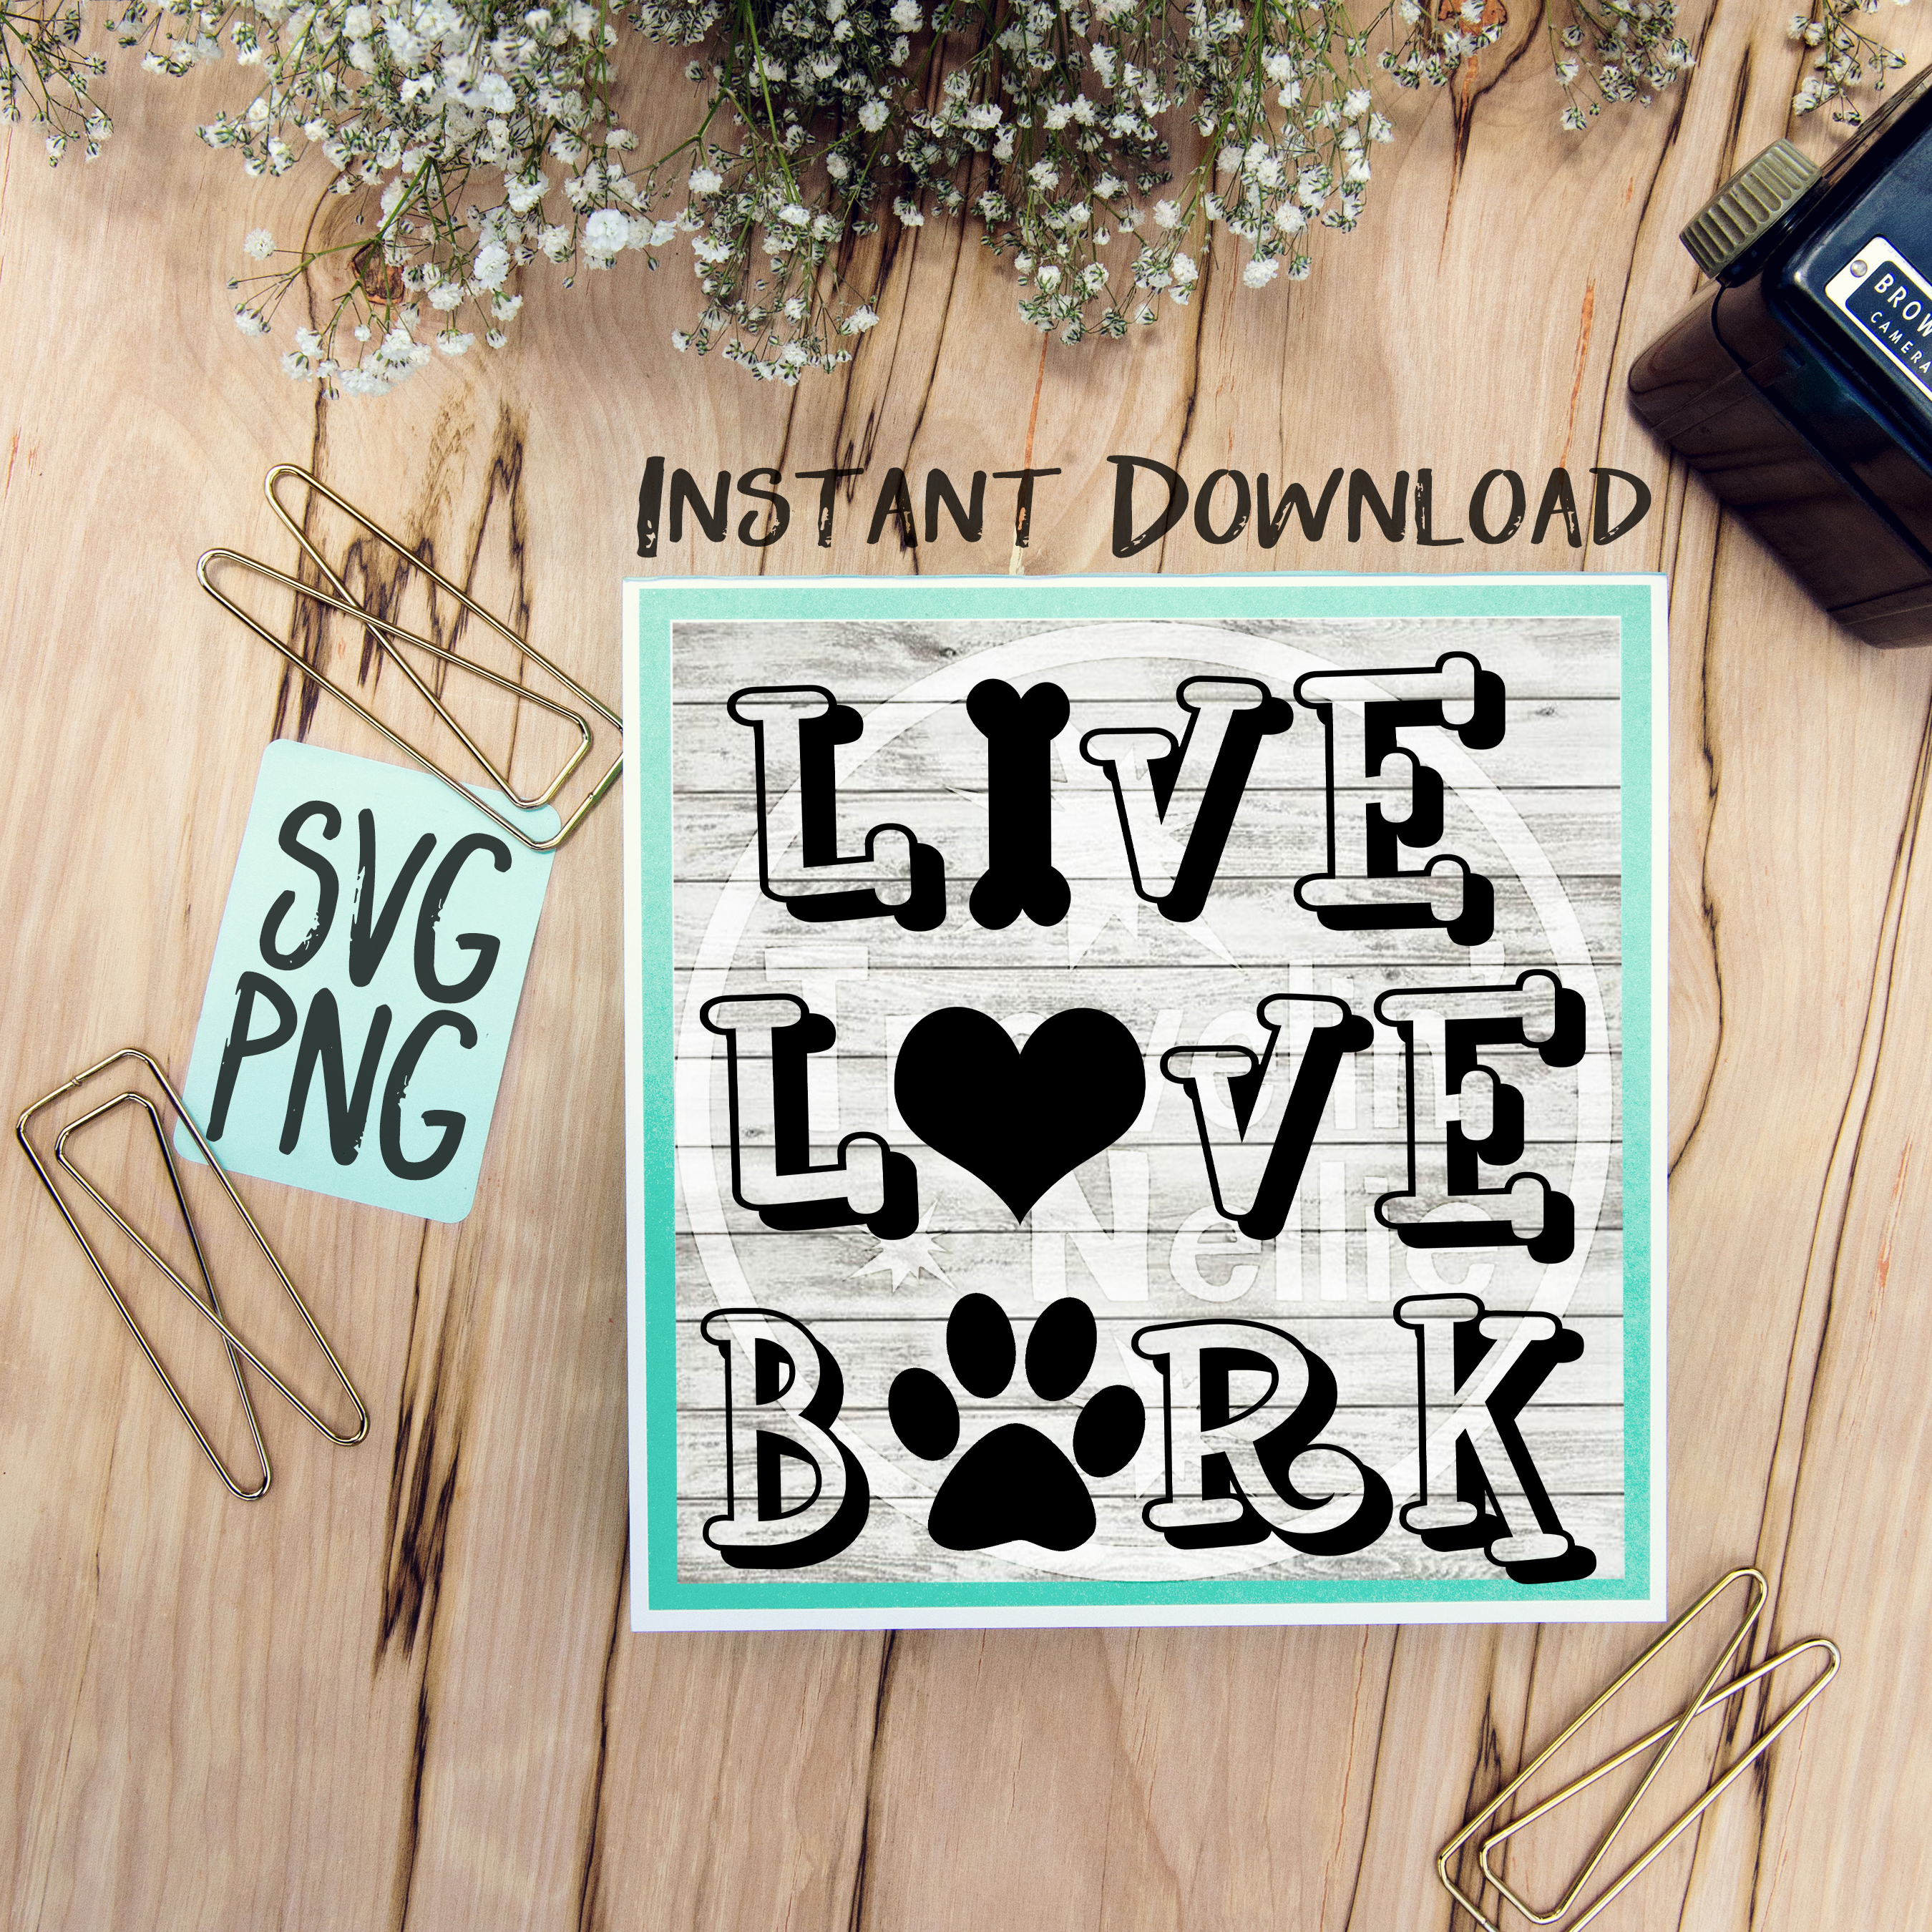 Live Love Bark SVG PNG Image Design for Vinyl Cutters Print DIY Shirt Design Brother Cricut Cameo Cutout  example image 1